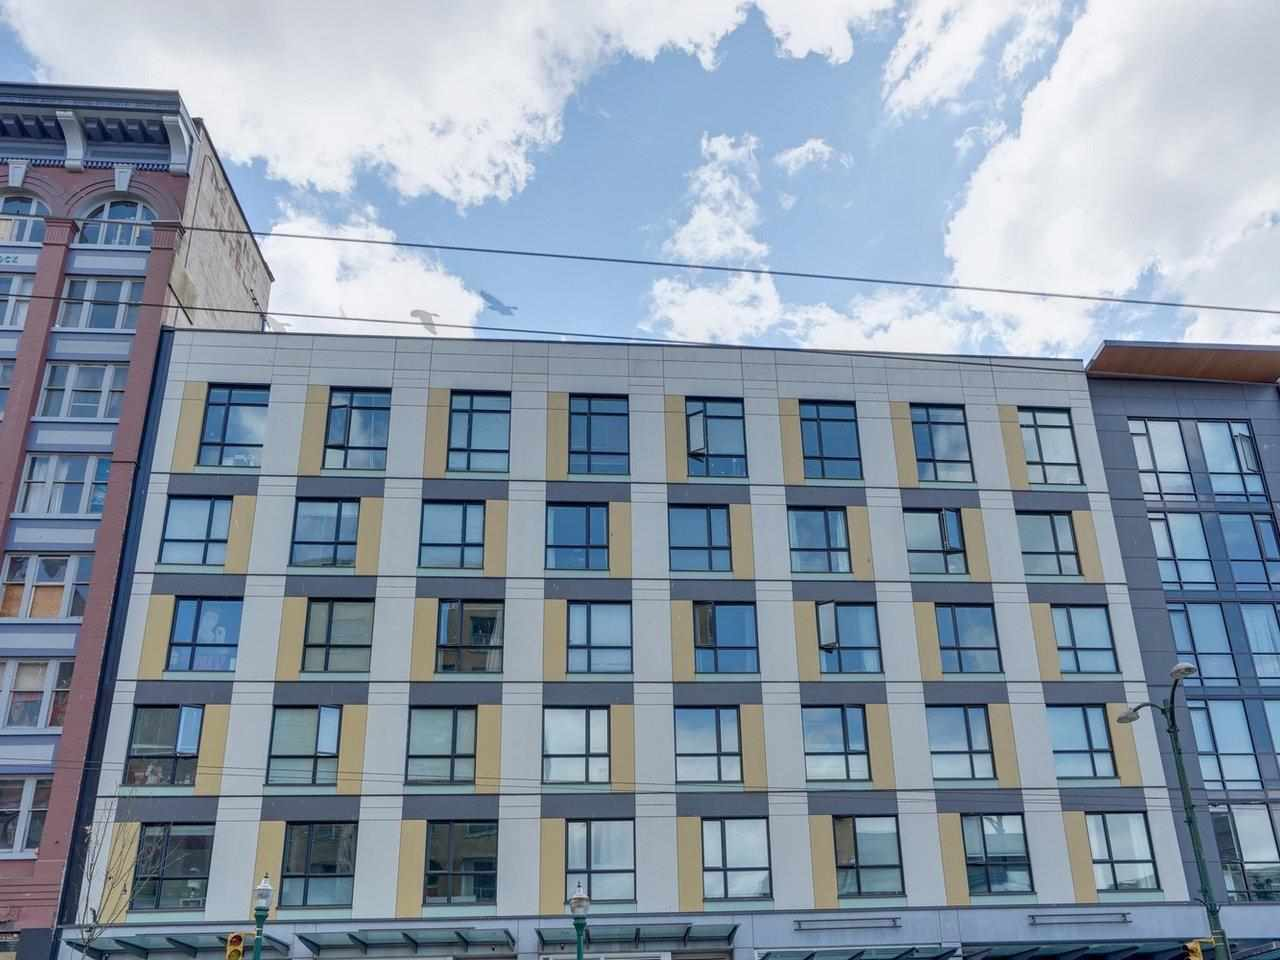 419 138 E HASTINGS STREET - Downtown VE Apartment/Condo for sale, 1 Bedroom (R2591060) - #19